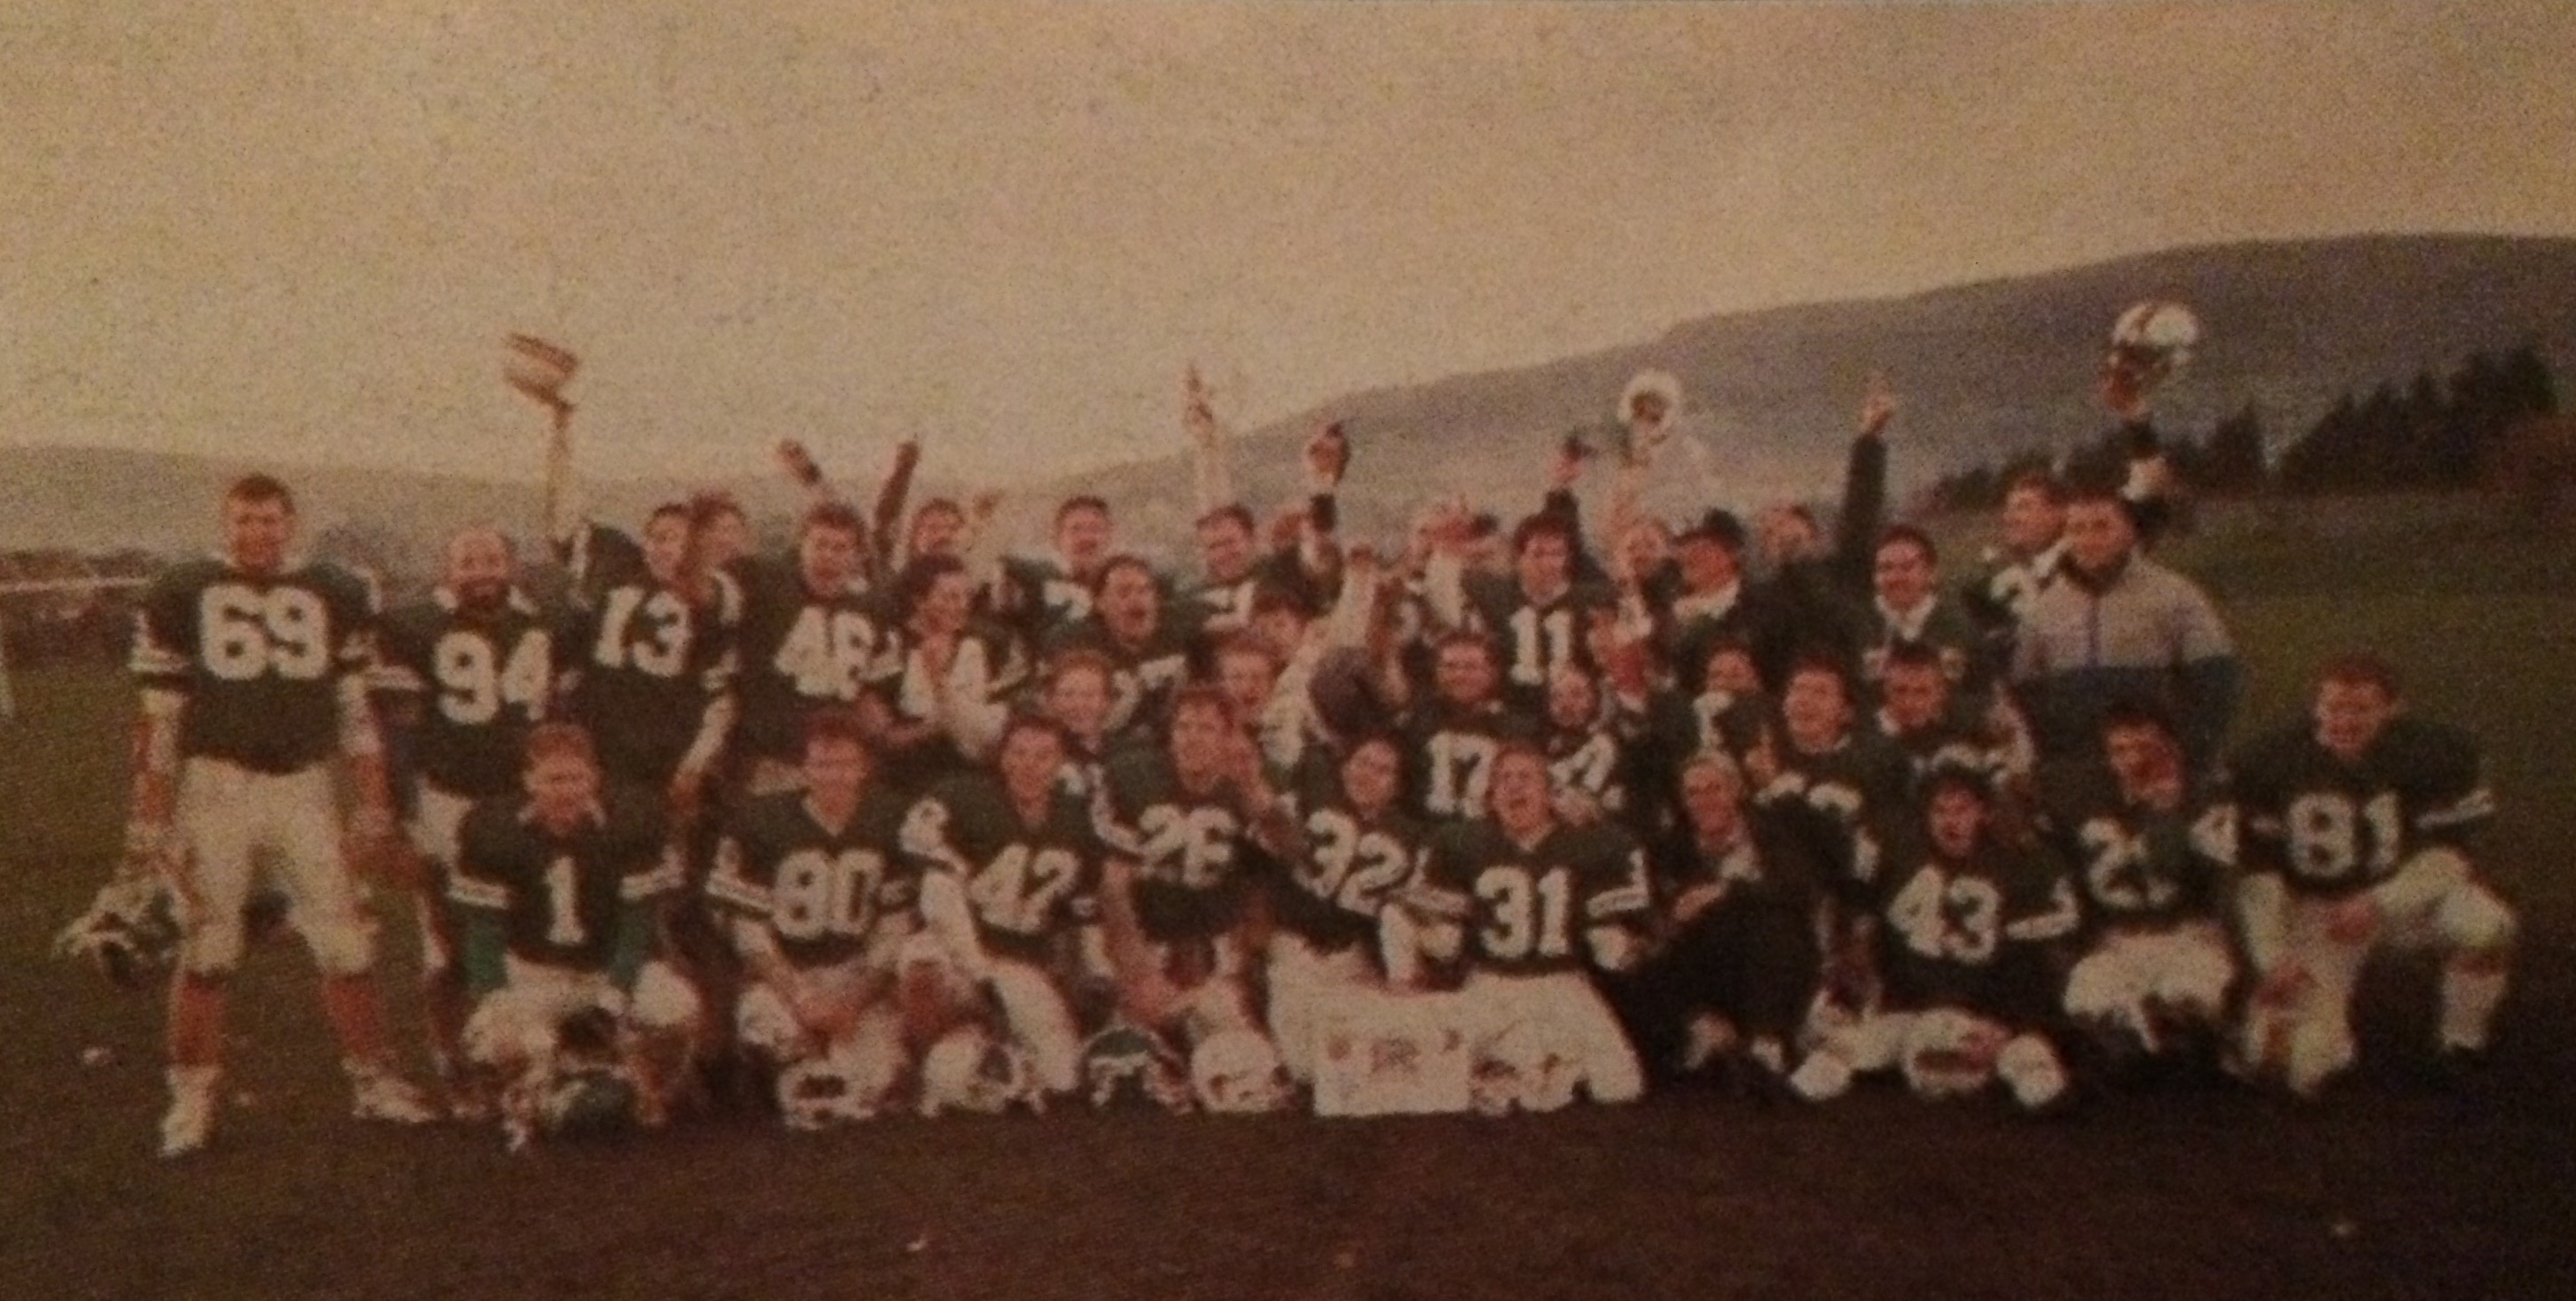 Dublin Celts Shamrock Bowl IV Champins 1989